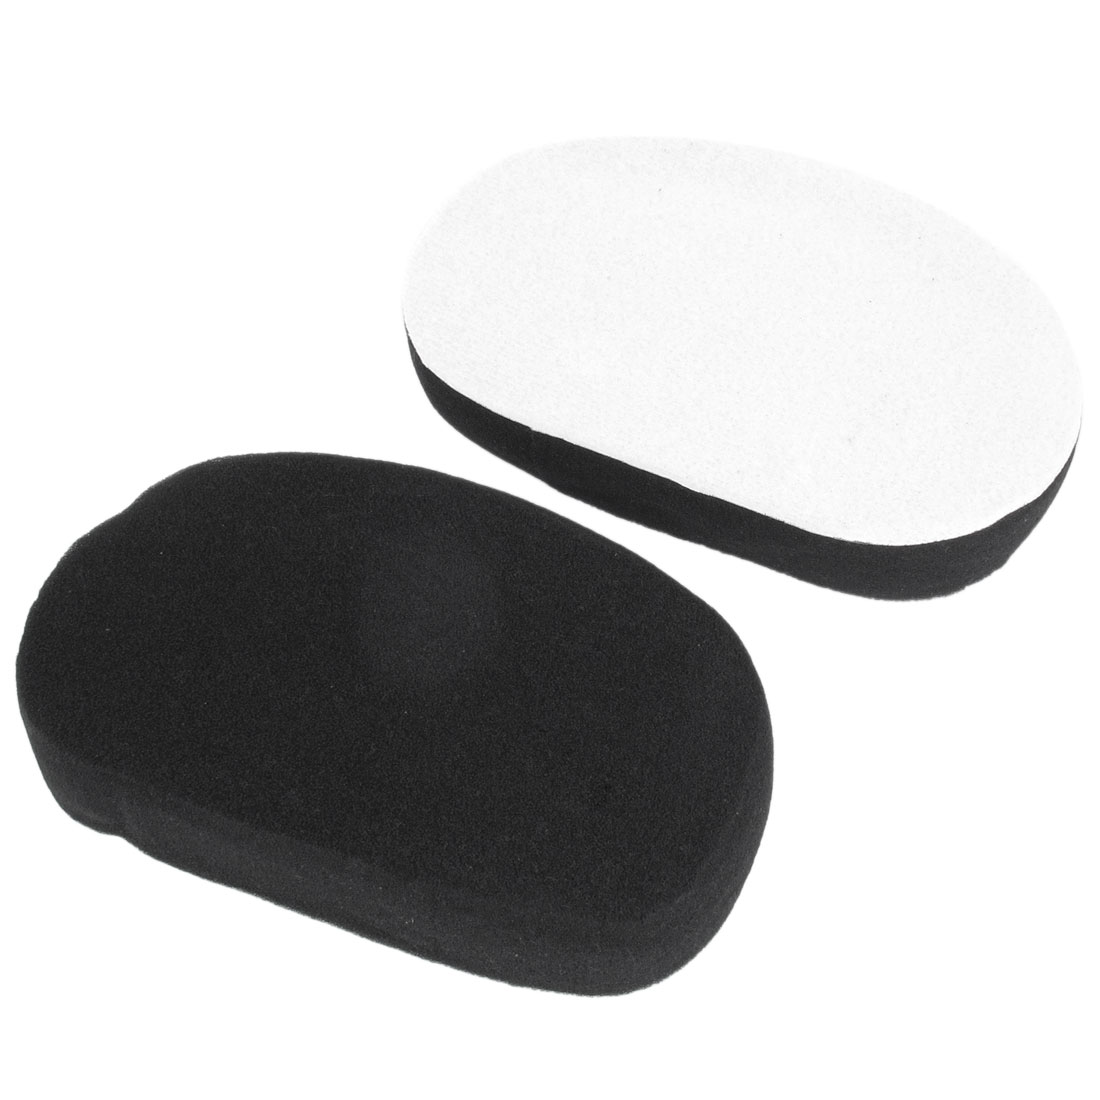 2 Pcs Black White Oval Shape Soft Sponge Car Washing Cleaning Pad